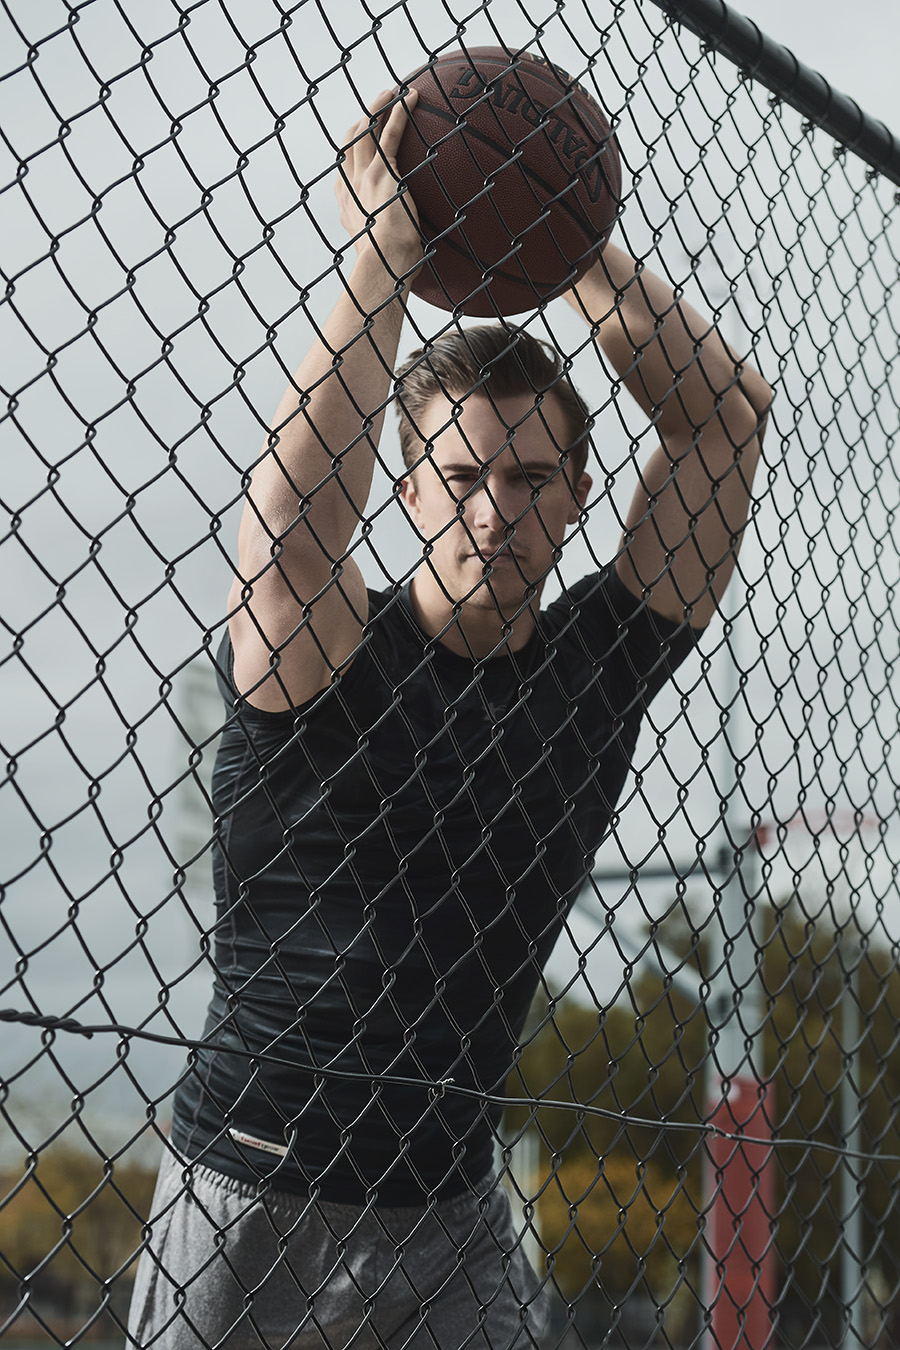 Neal holding basketball over his head behind wired fence